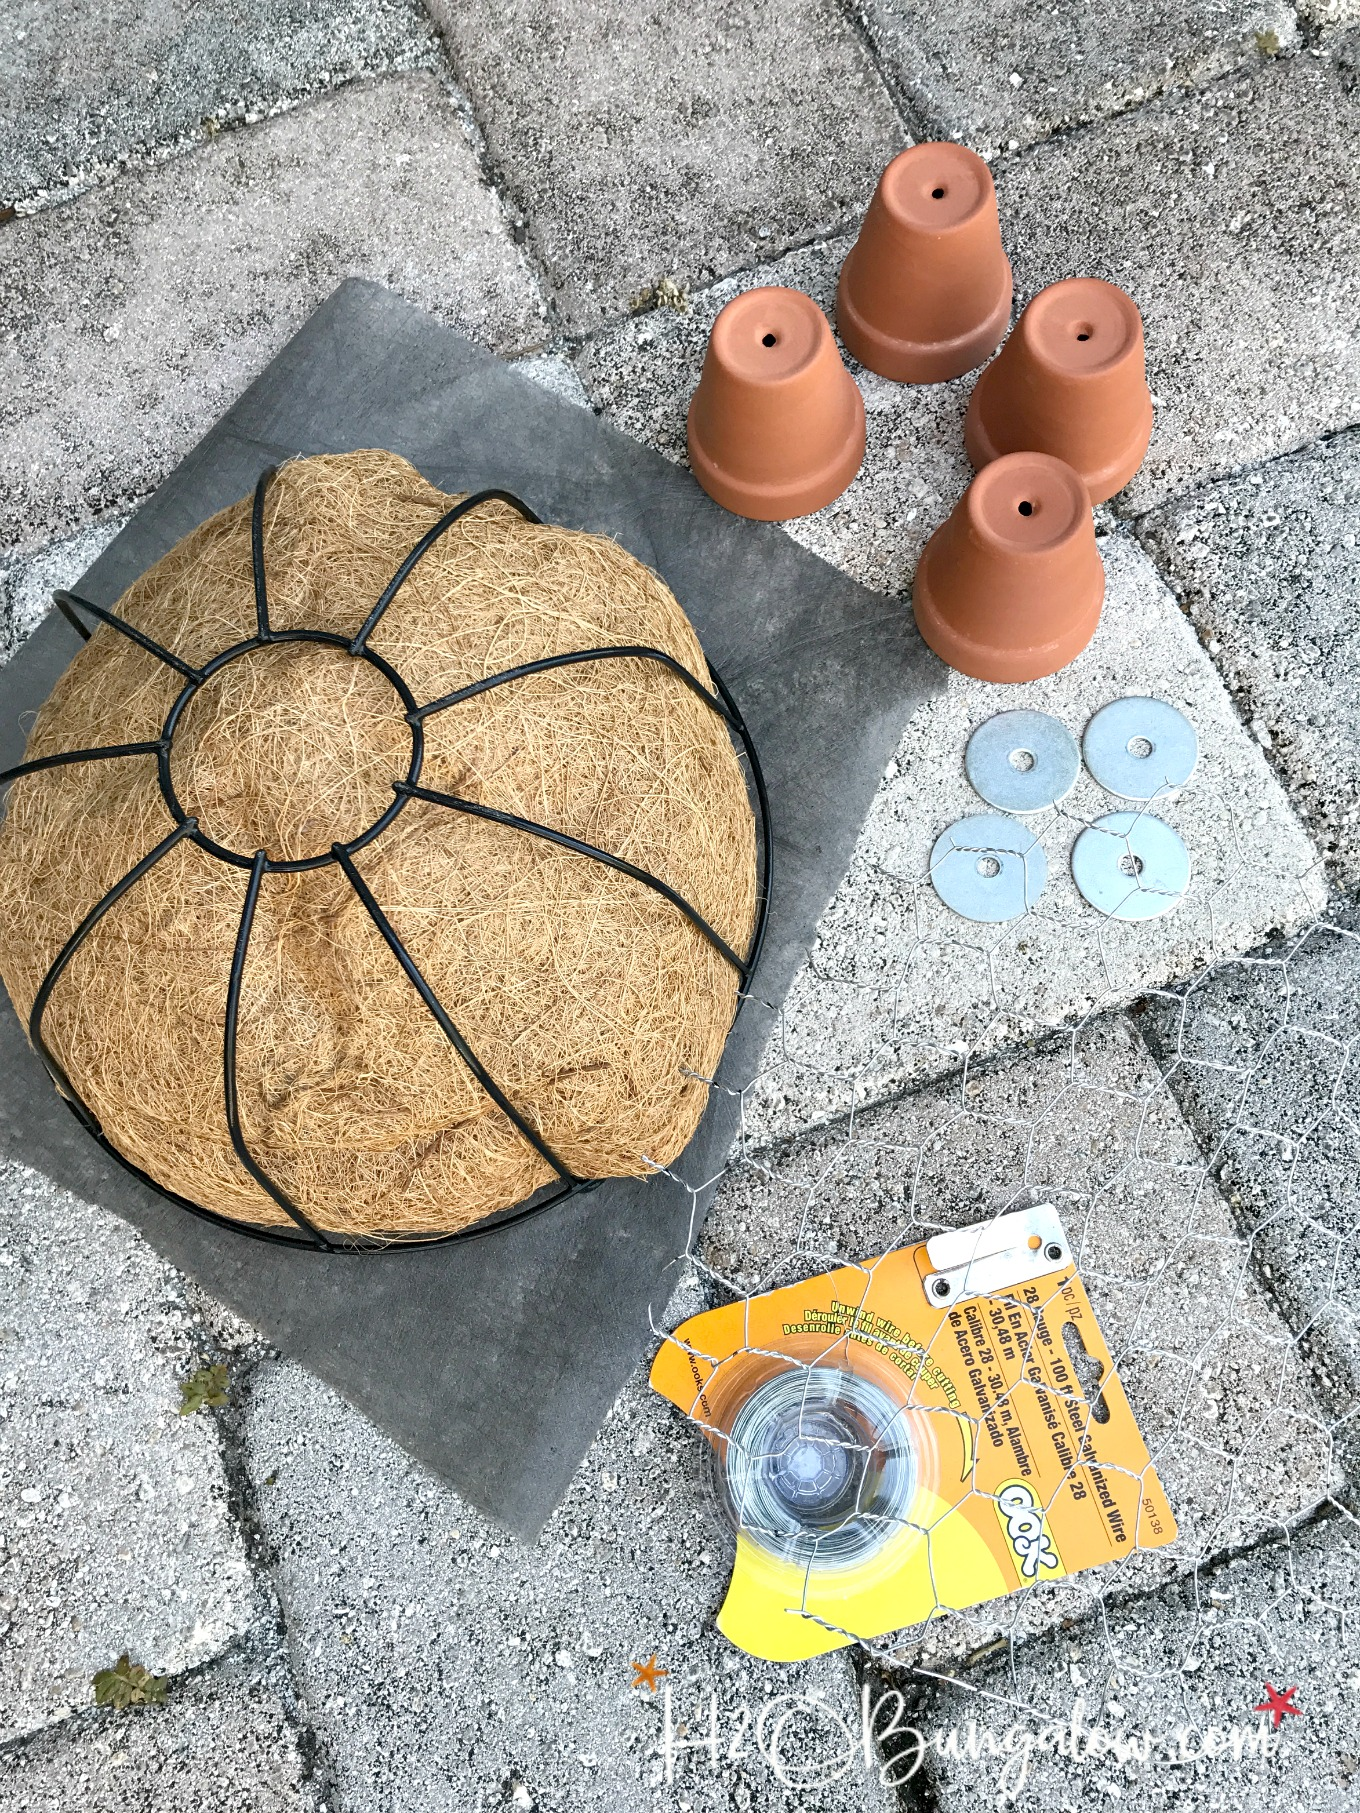 How To Make A DIY Turtle Topiary Tutorial From Simple Dollar Store And  Hardware Items.